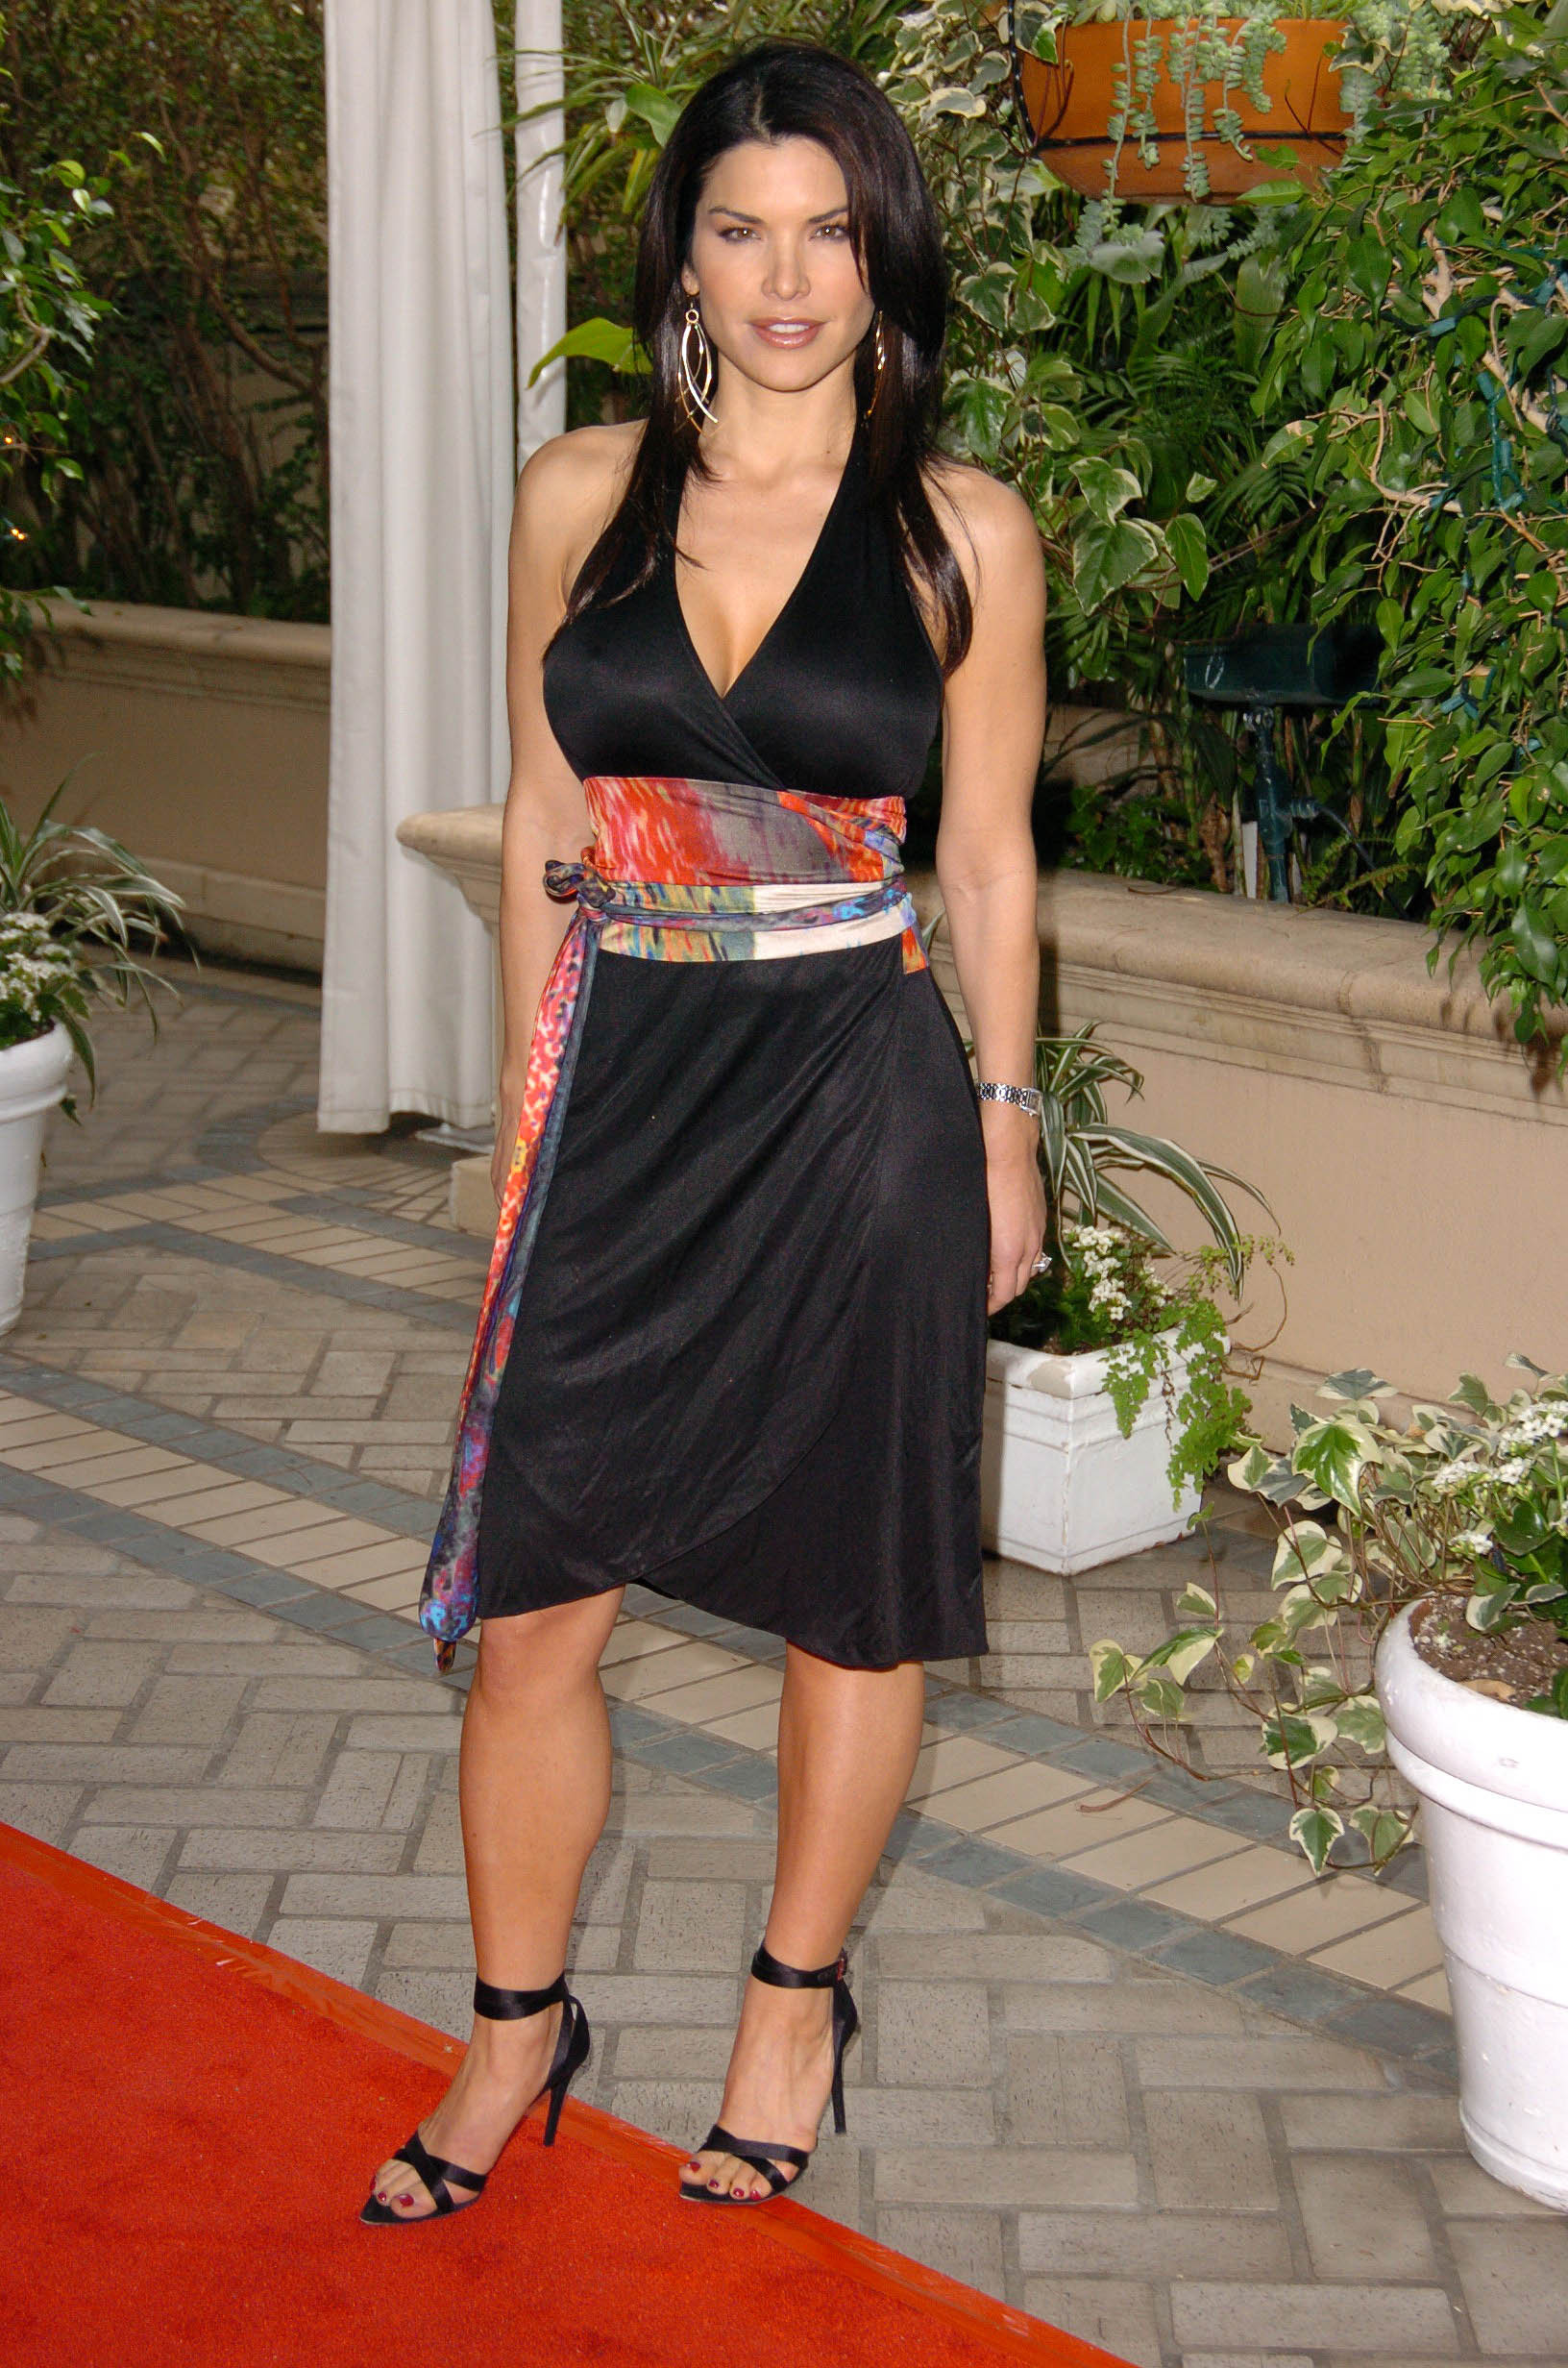 lauren sanchez - photo #19